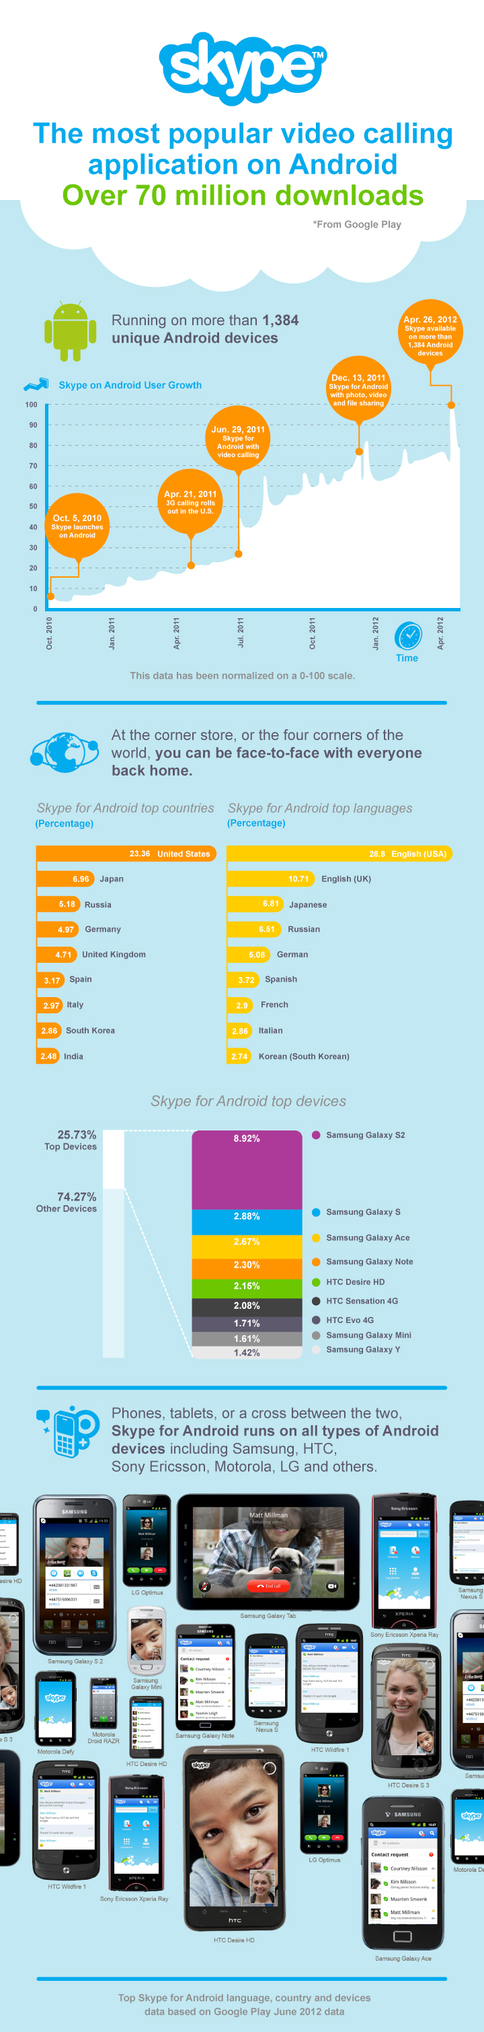 Skype-Prevails-In-Android-infographic